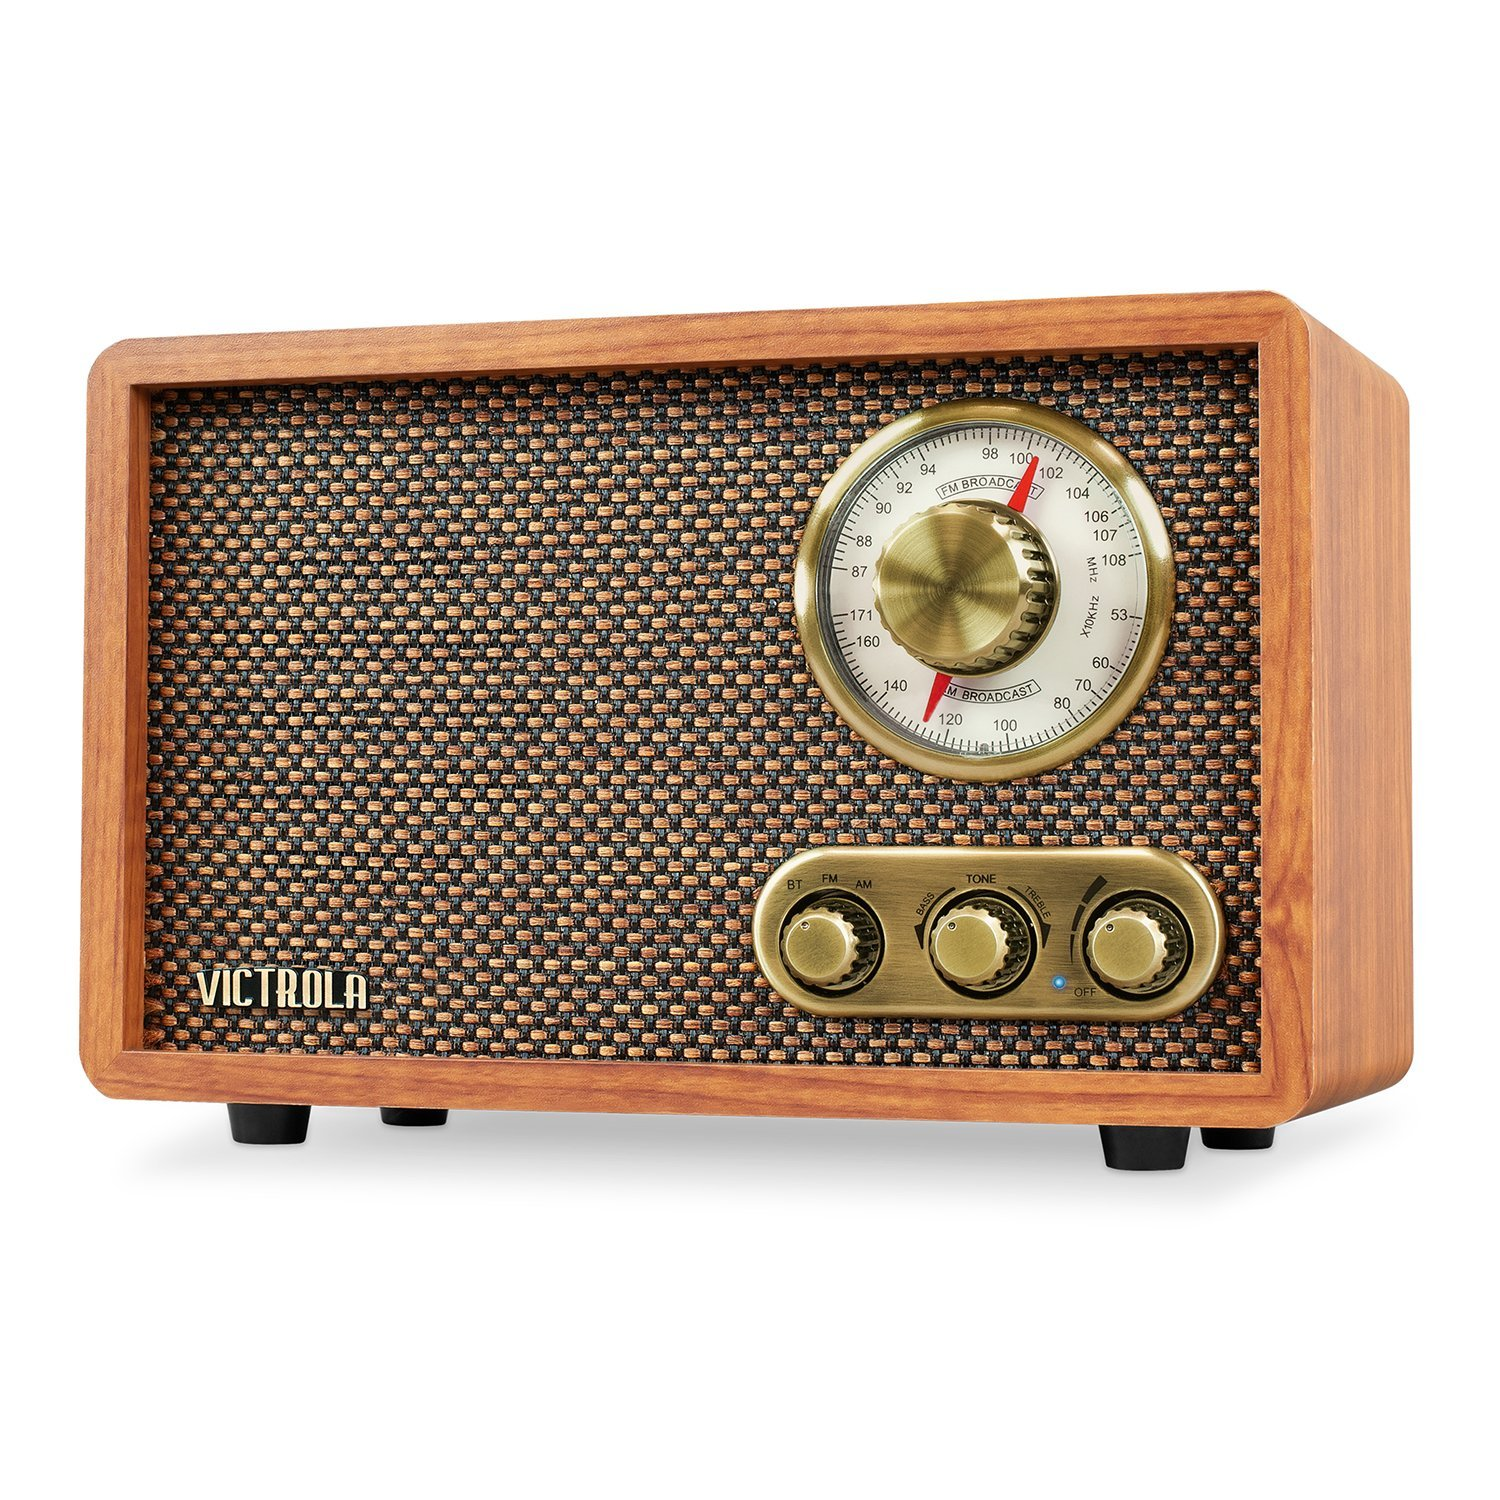 Victrola Retro Wood Bluetooth FM/AM Radio with Rotary Dial, Walnut by Victrola (Image #1)